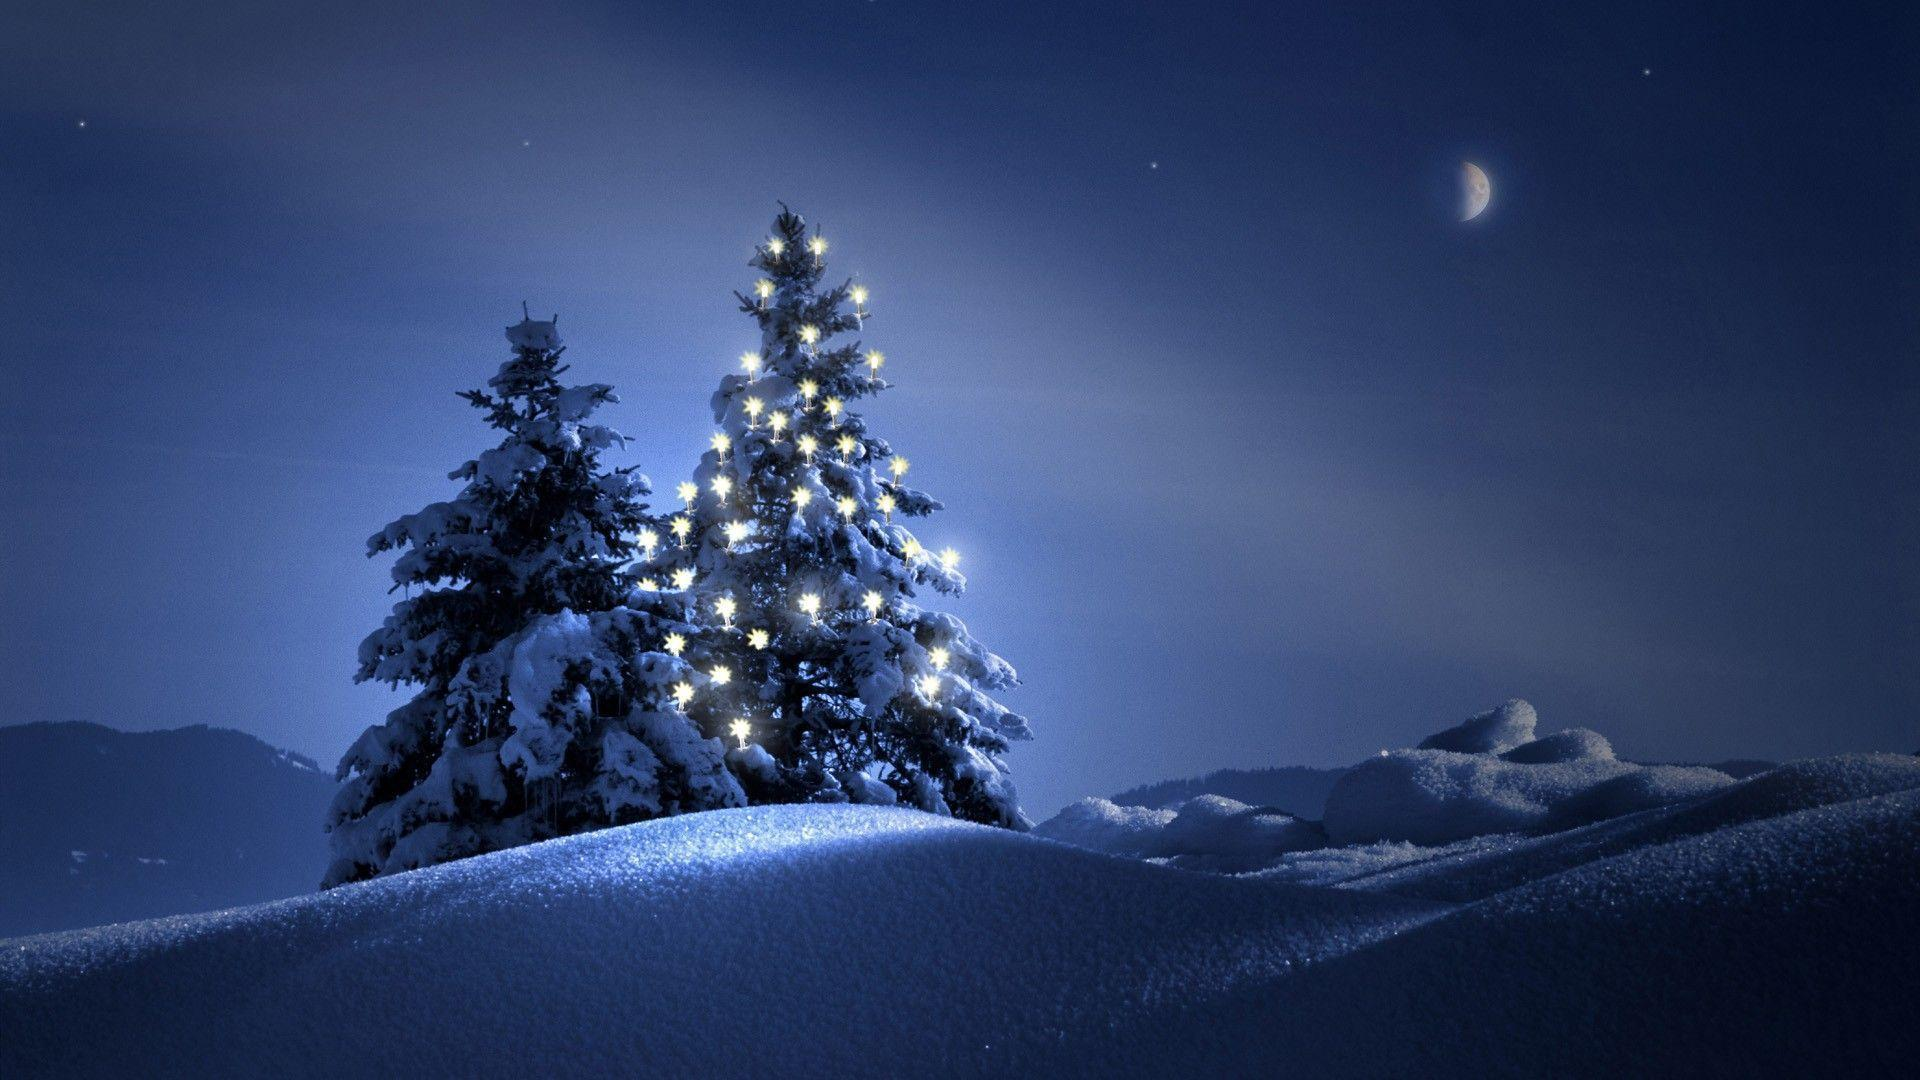 Beautiful christmas tree wallpaper - Xmas Stuff For Beautiful Christmas Tree Wallpapers